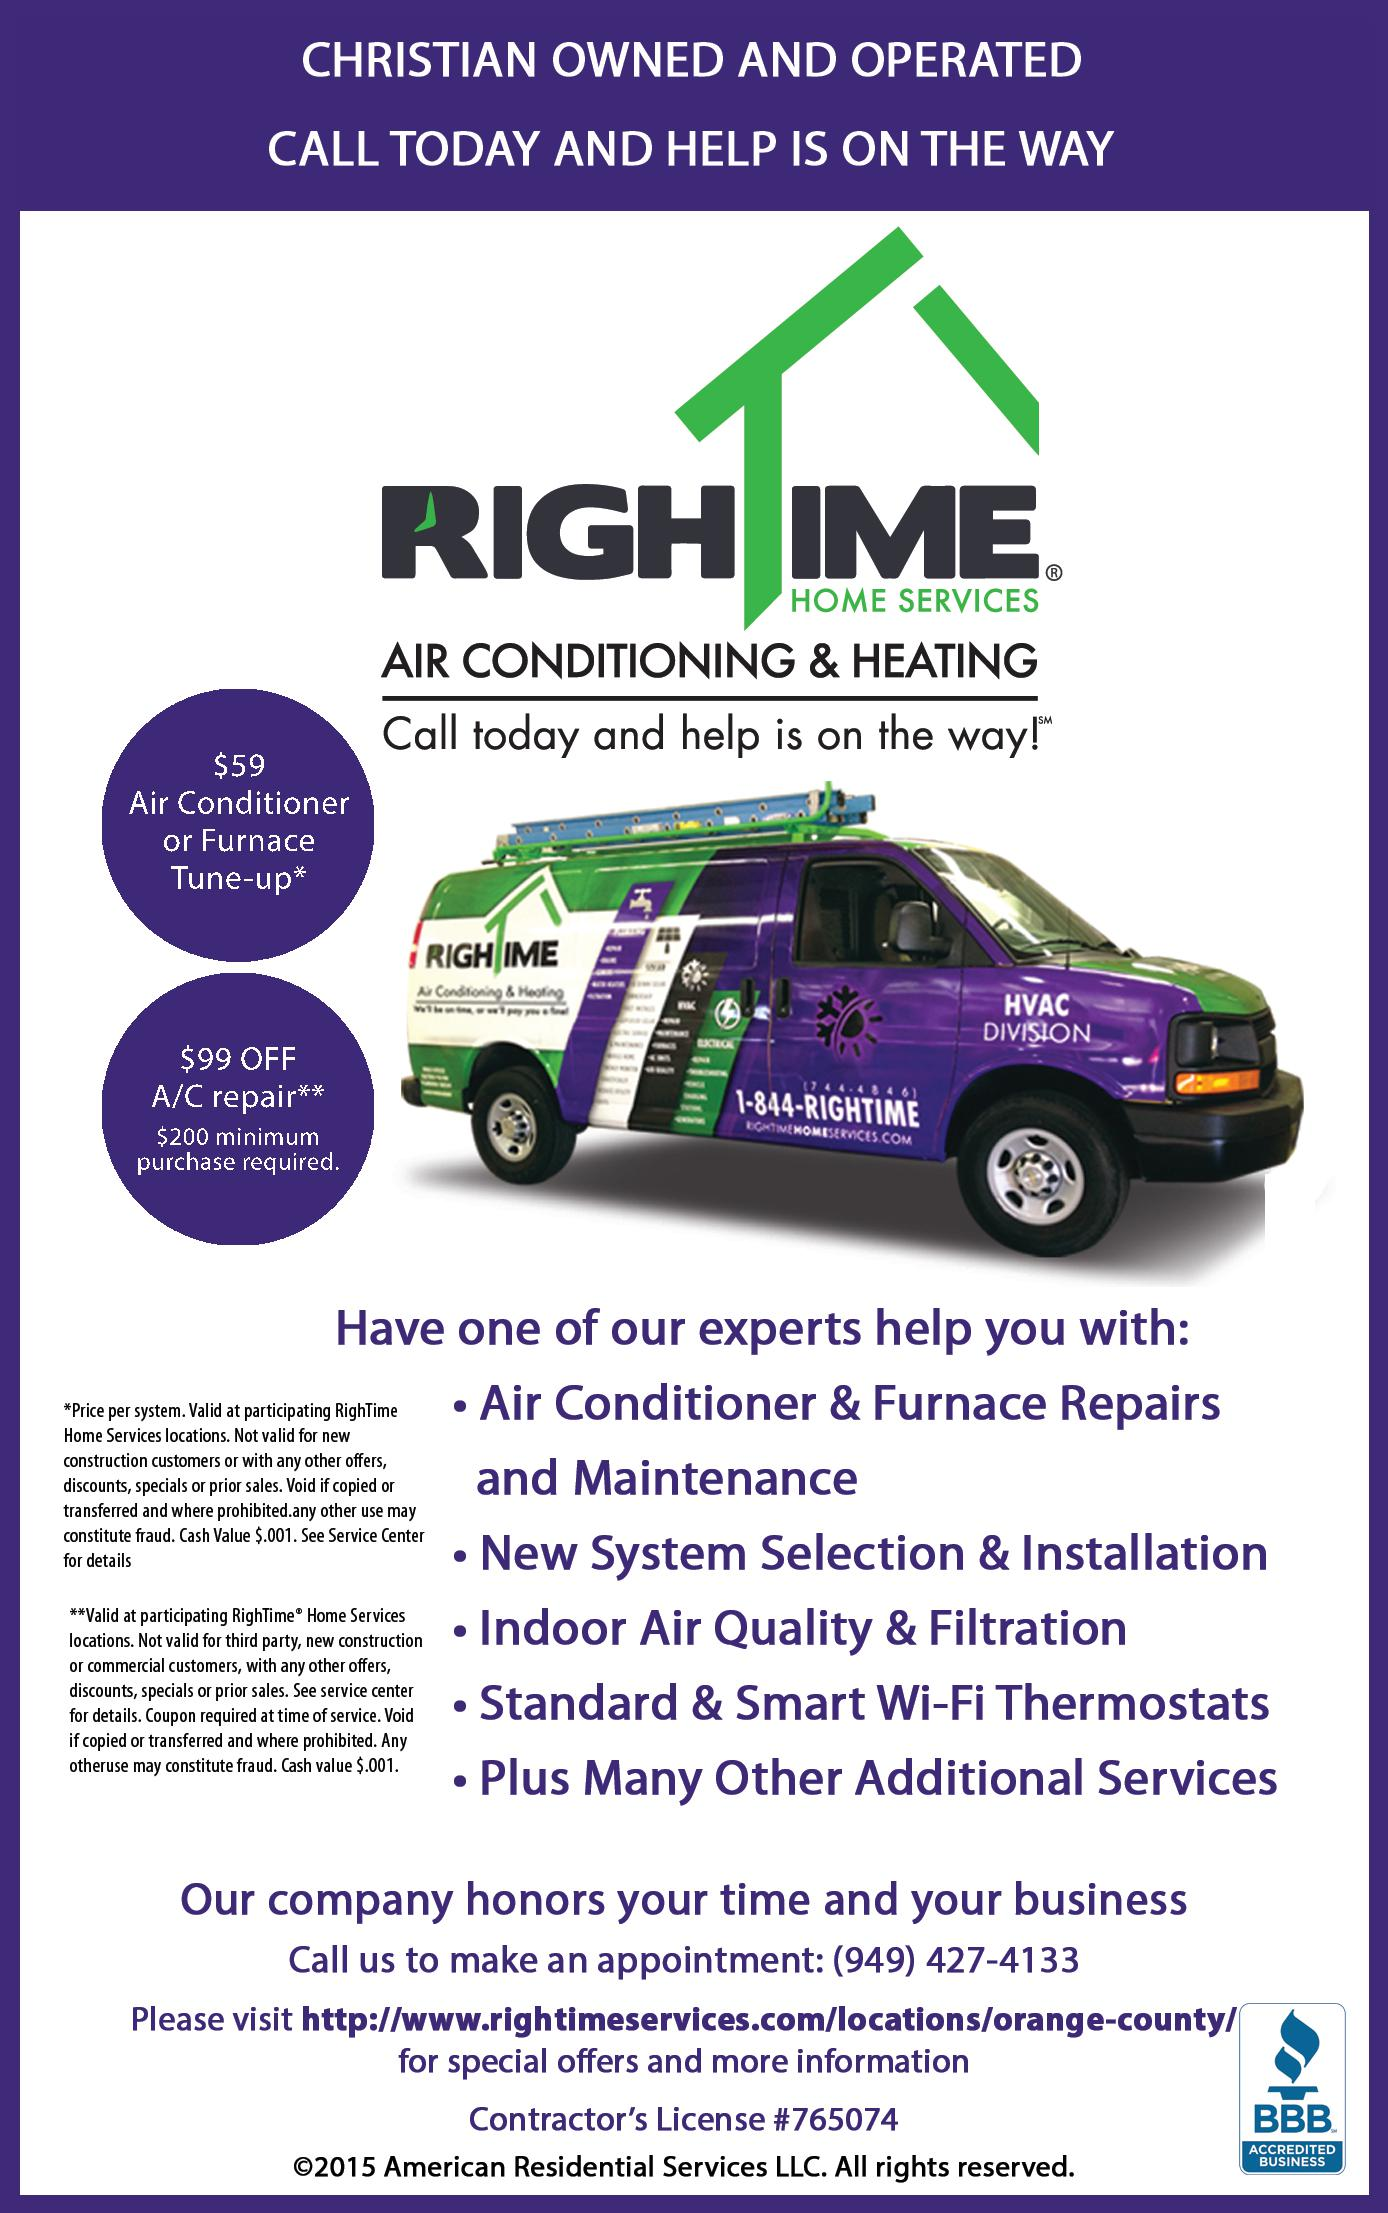 RighTime Air Conditioning and Heating